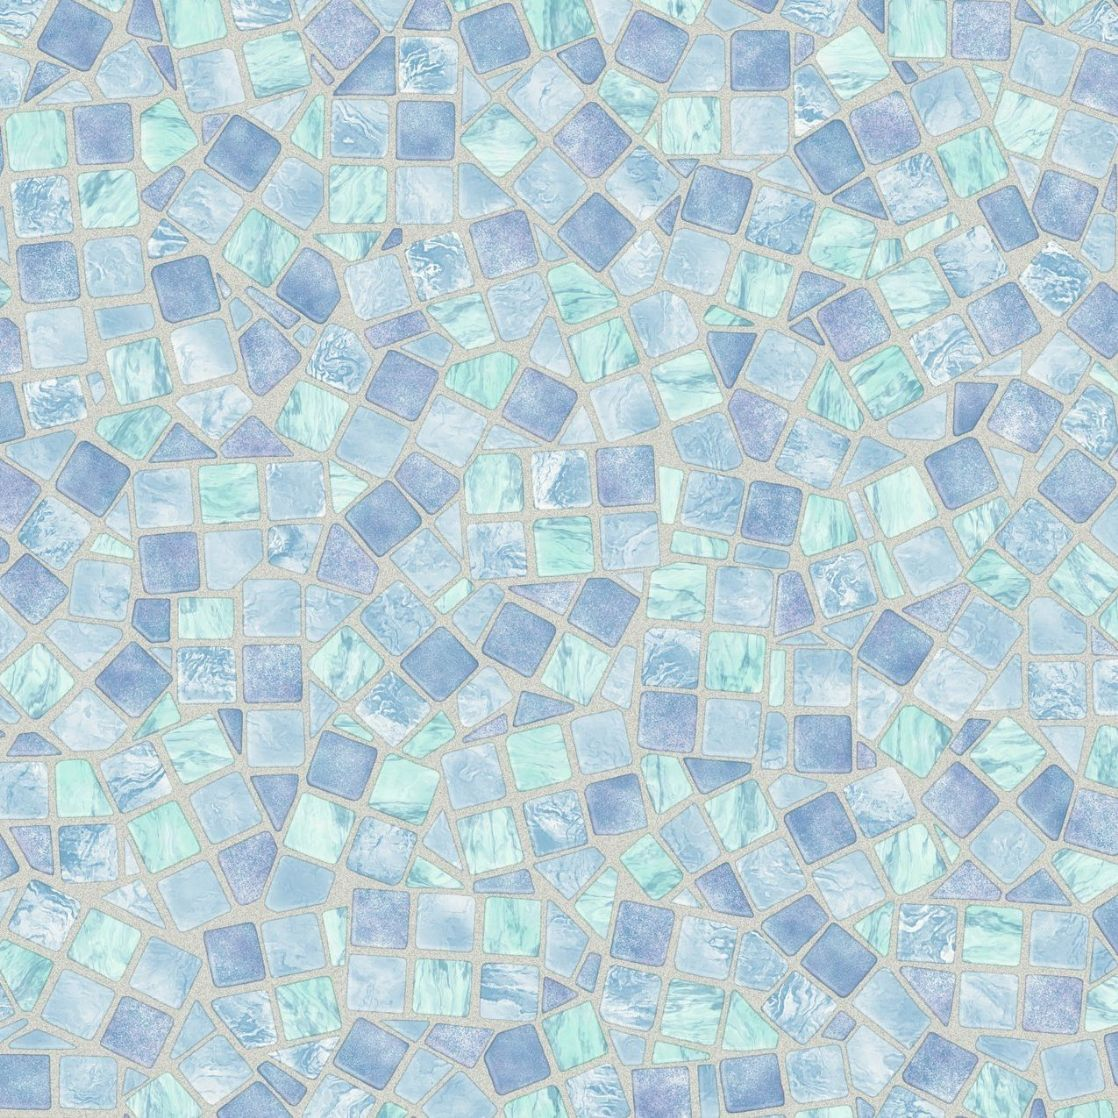 Light Blue Mosaic Tile Bathroom Wall Along With Corner